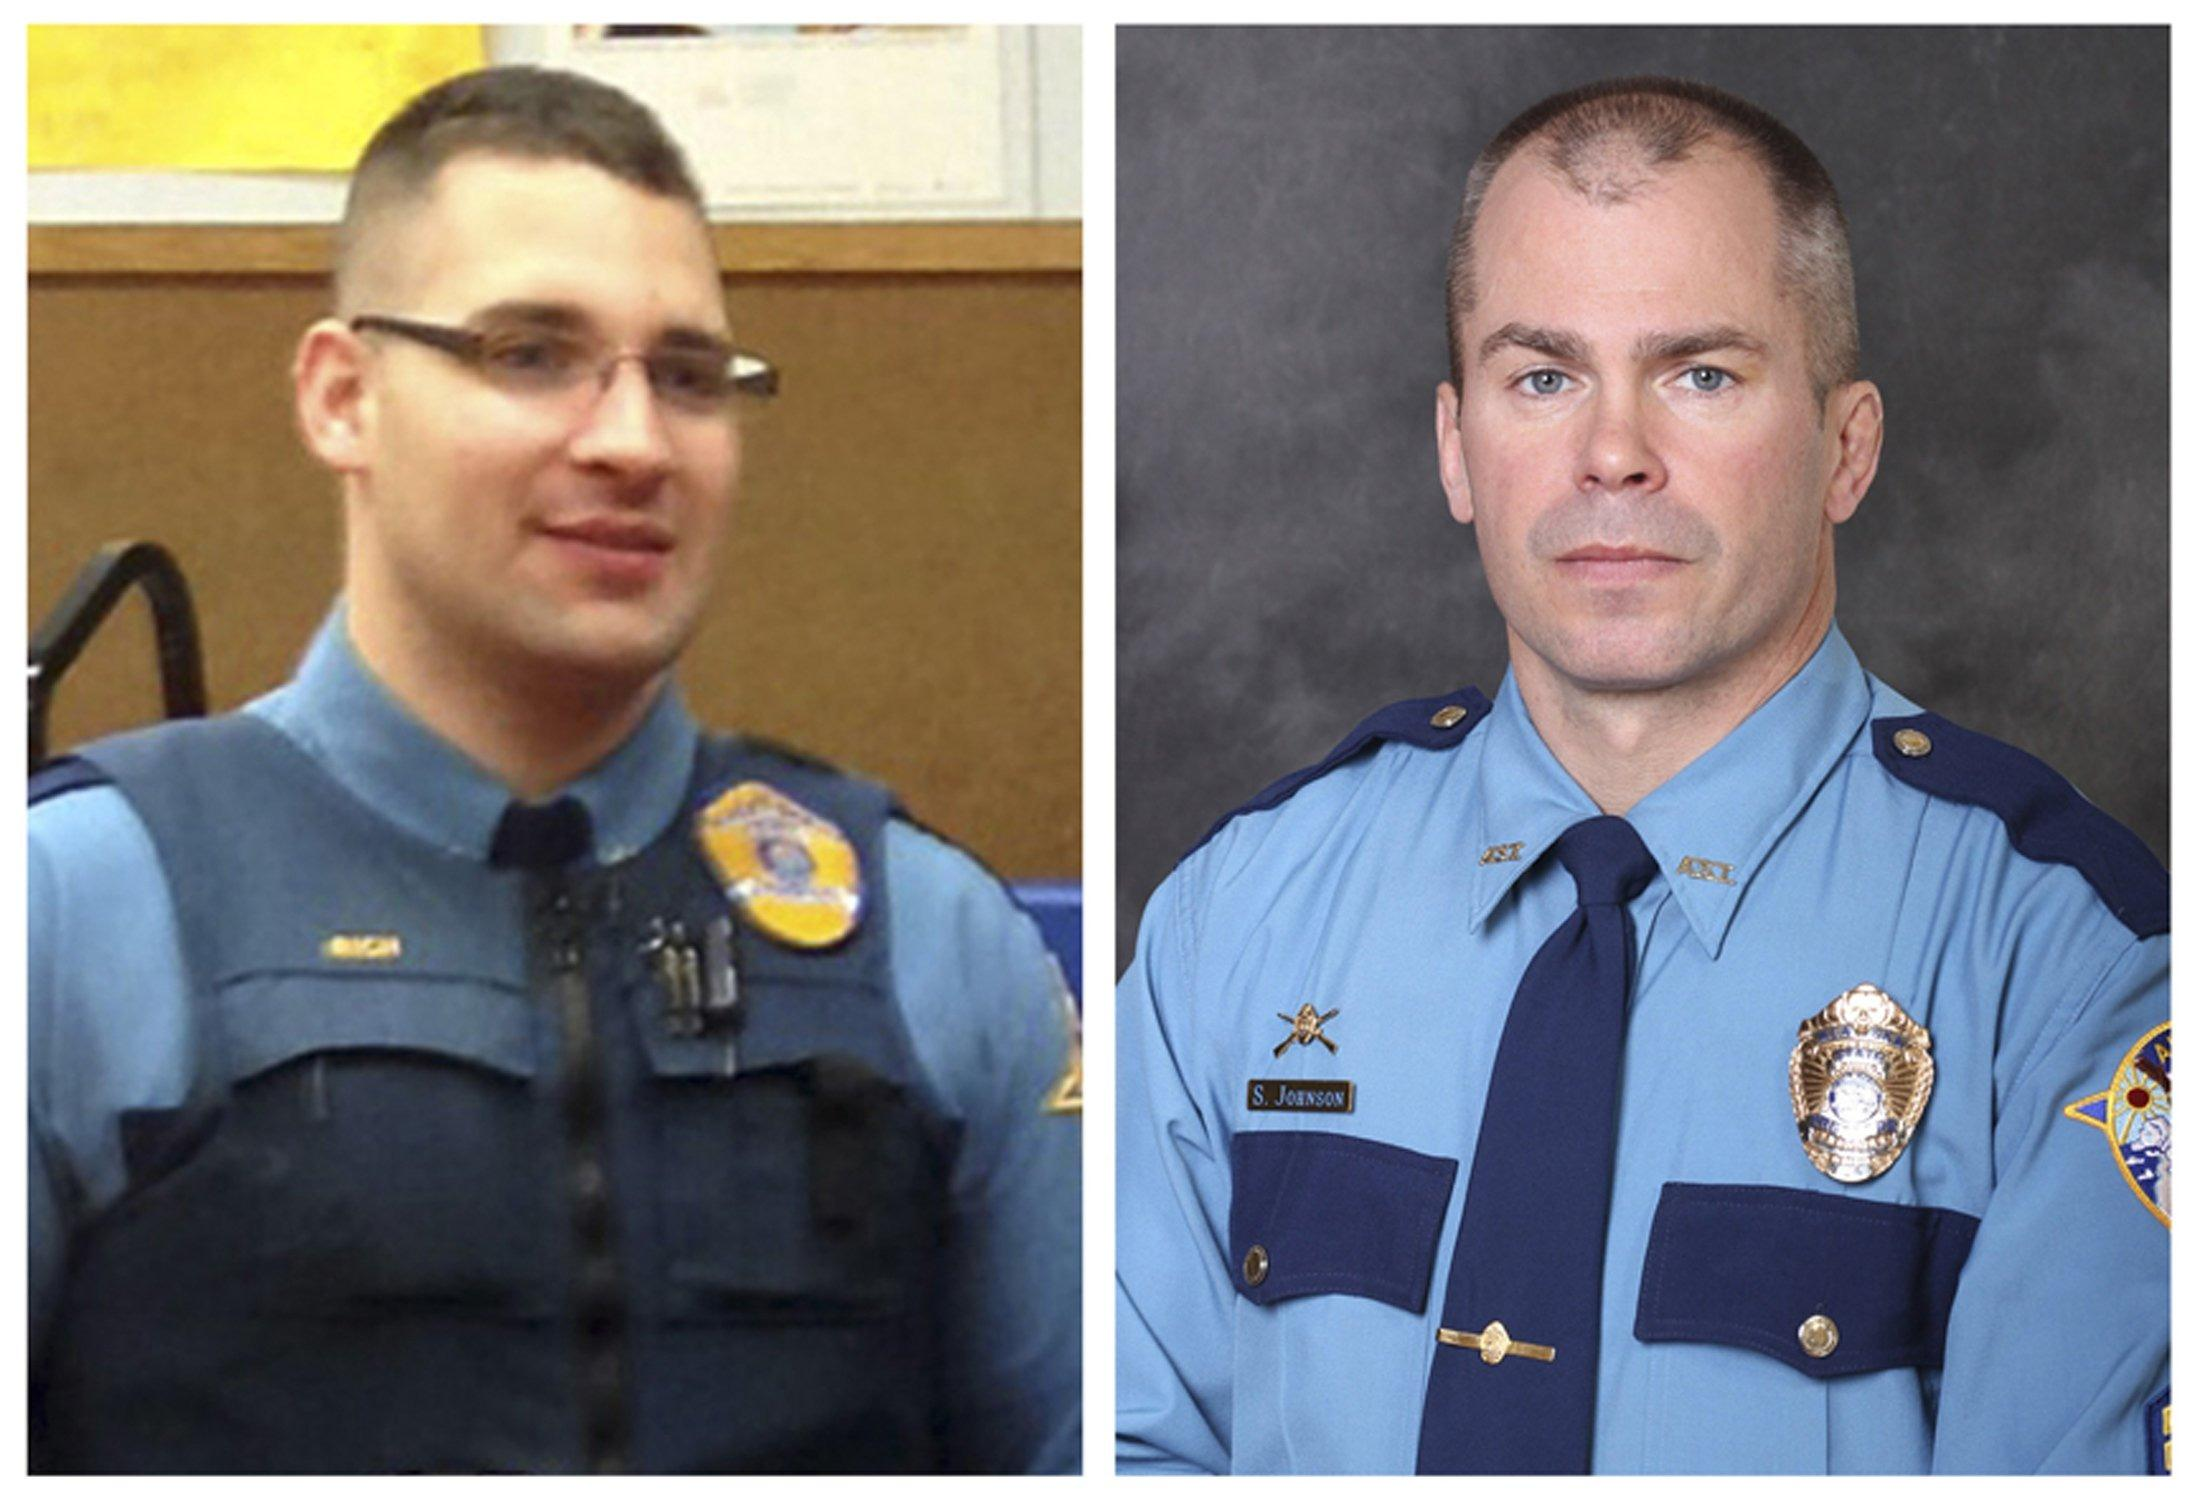 Alaska state troopers sergeant johnson and rich who were killed in